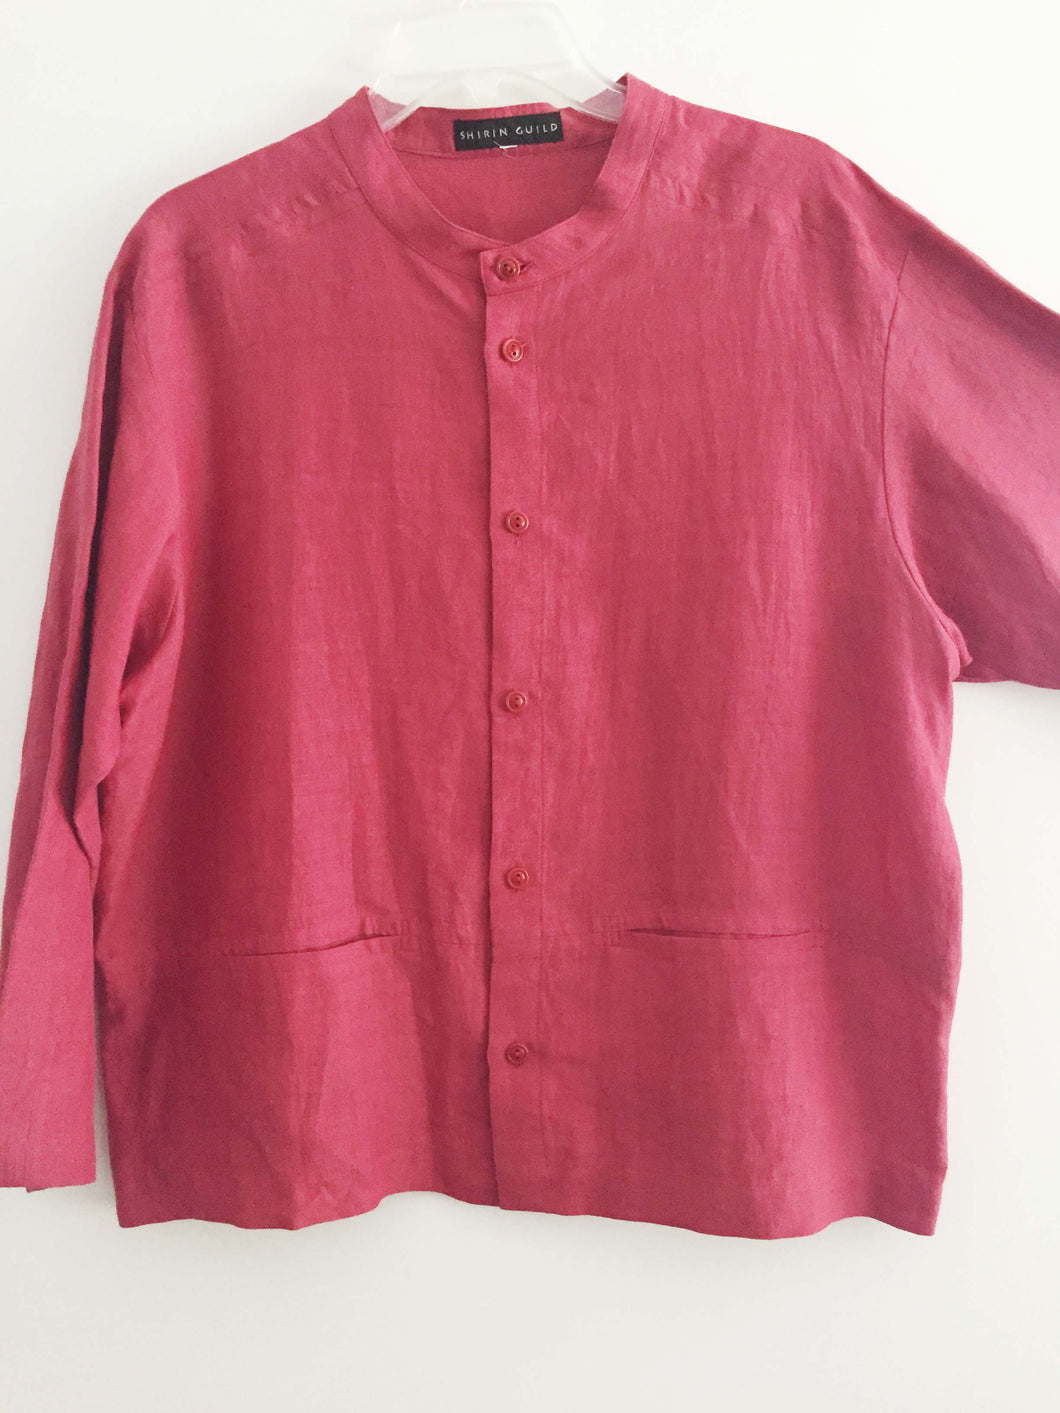 SHIRIN GUILD jacket lagenlook Ruby Red Linen Size M